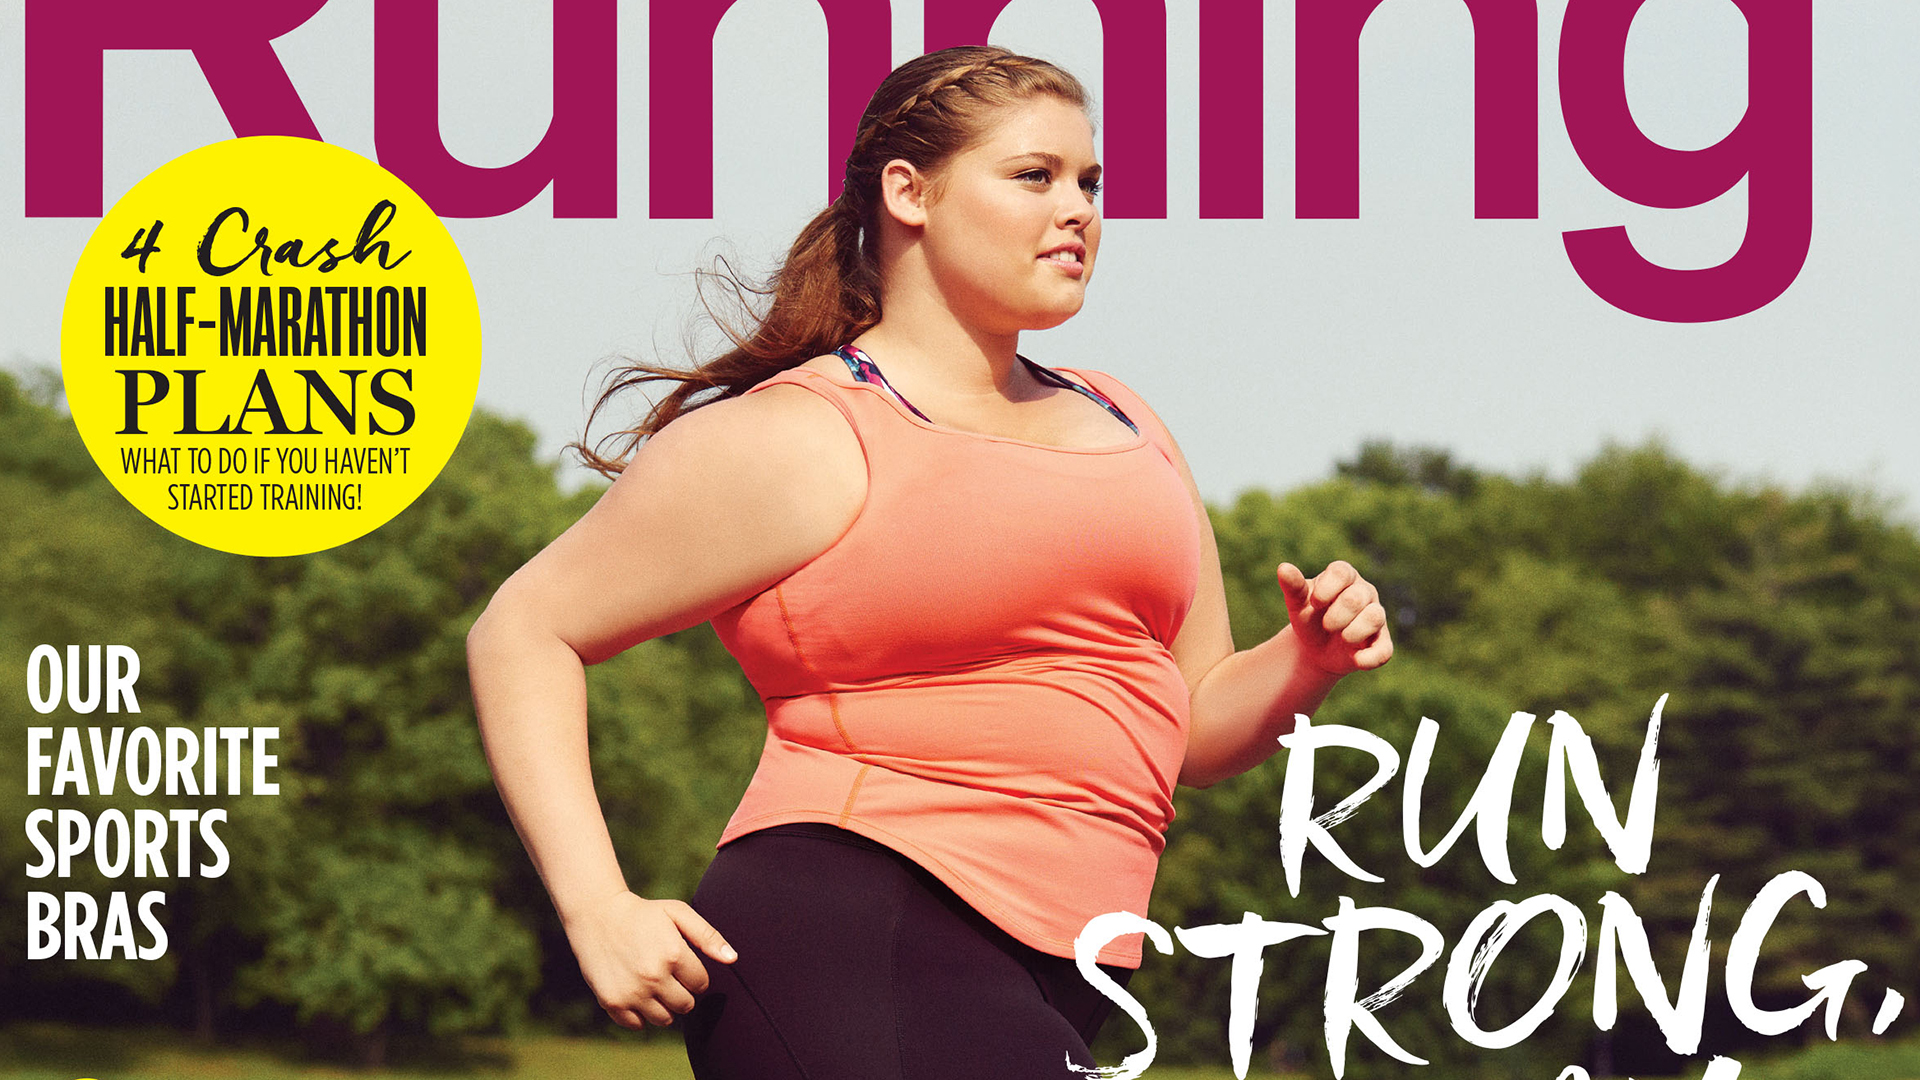 Women s Running  praised for curvy cover model   Runners come in all  shapes and sizes  f53ce7f789